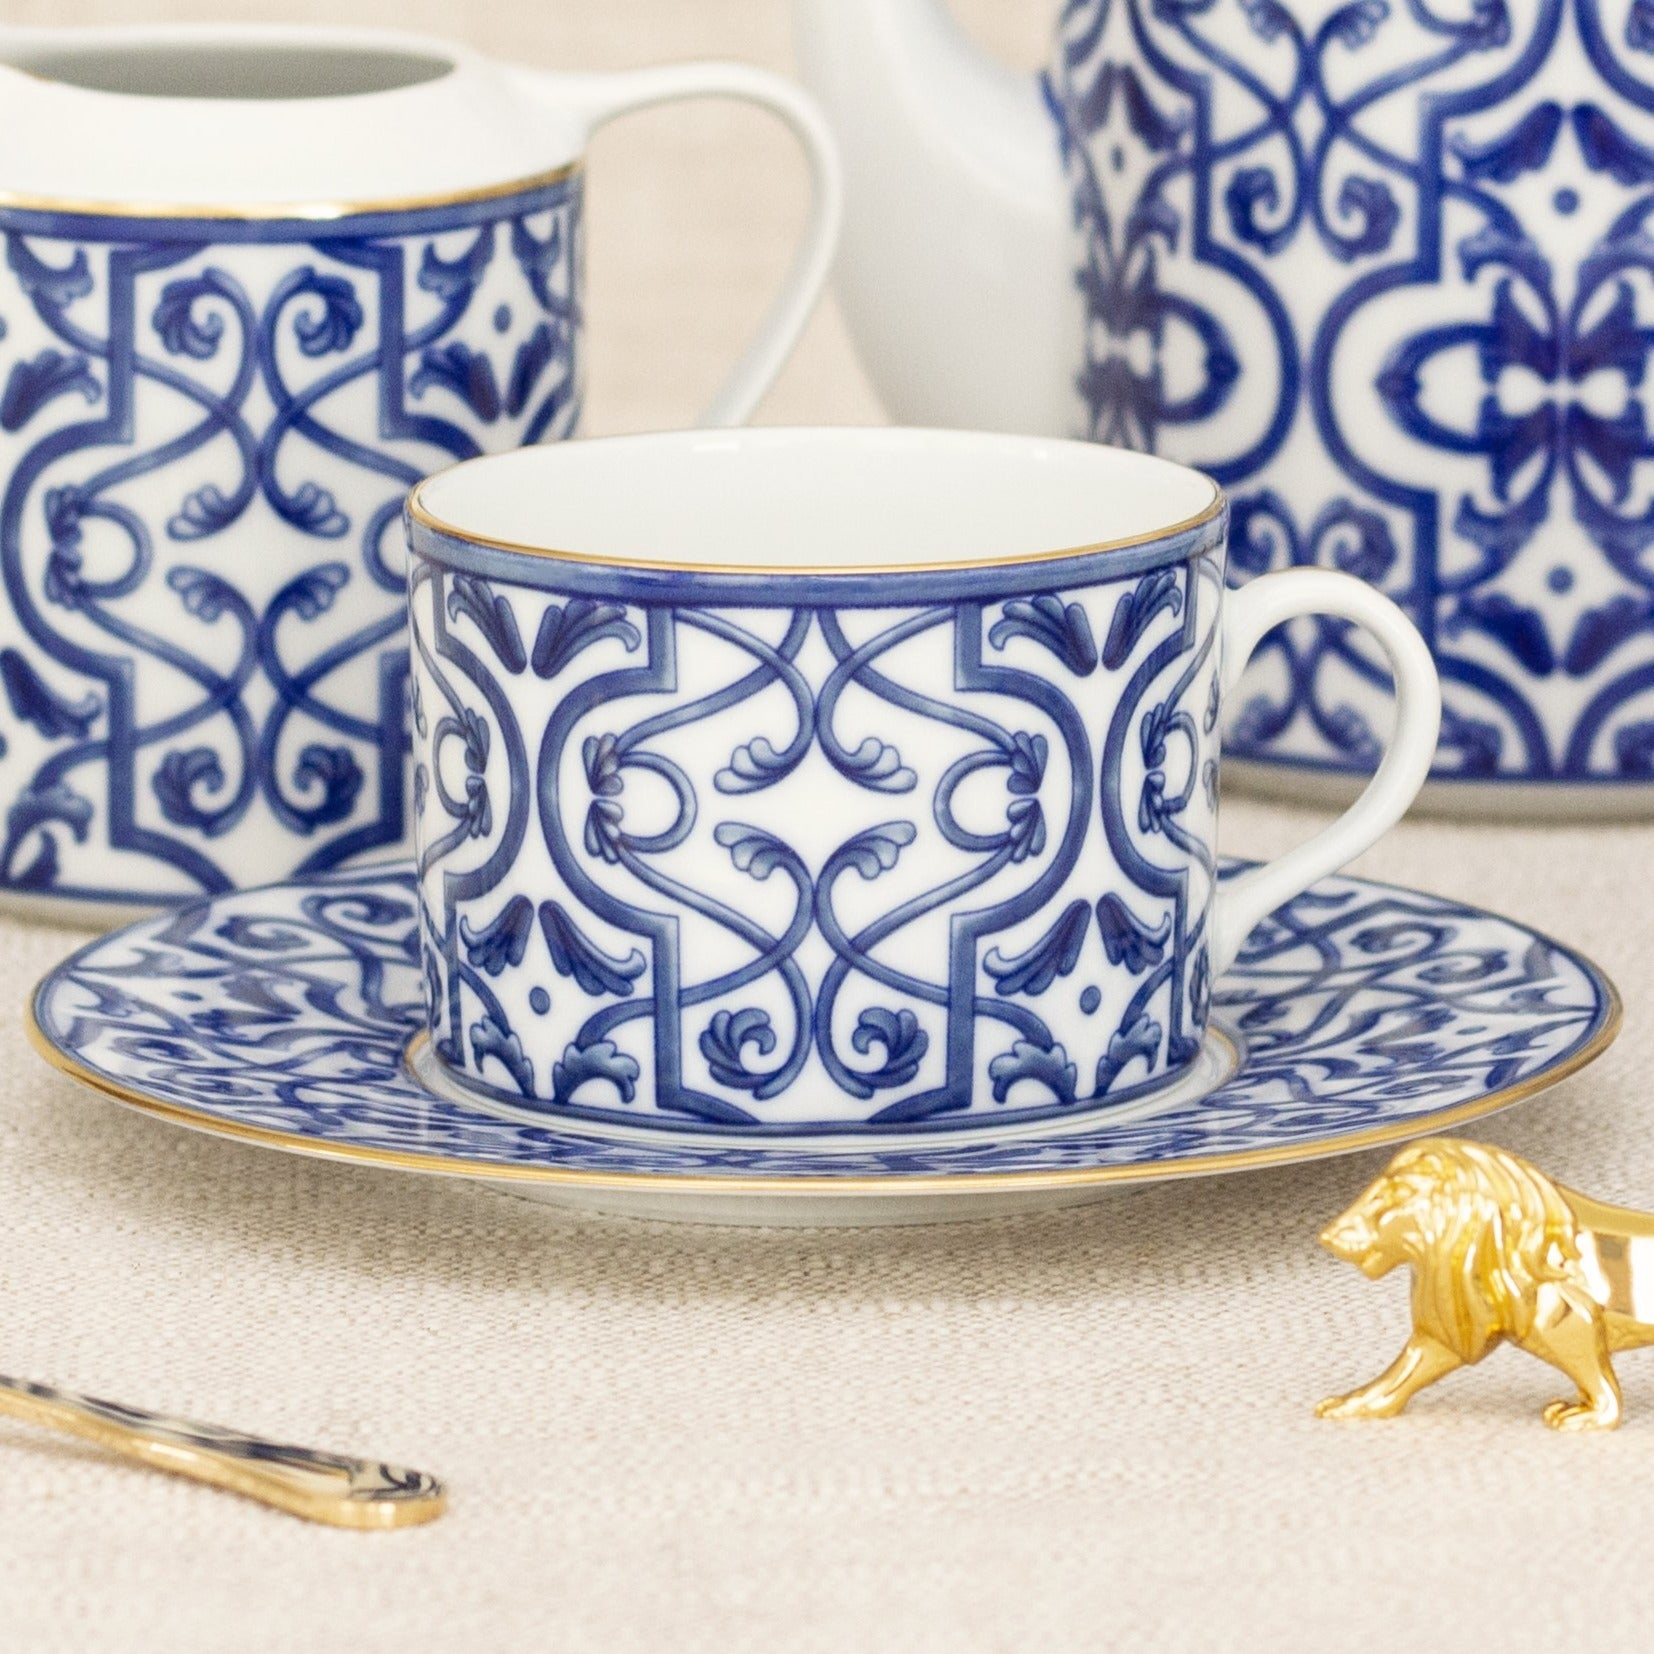 Blue Legacy Teacup and saucer Hostaro Tableware